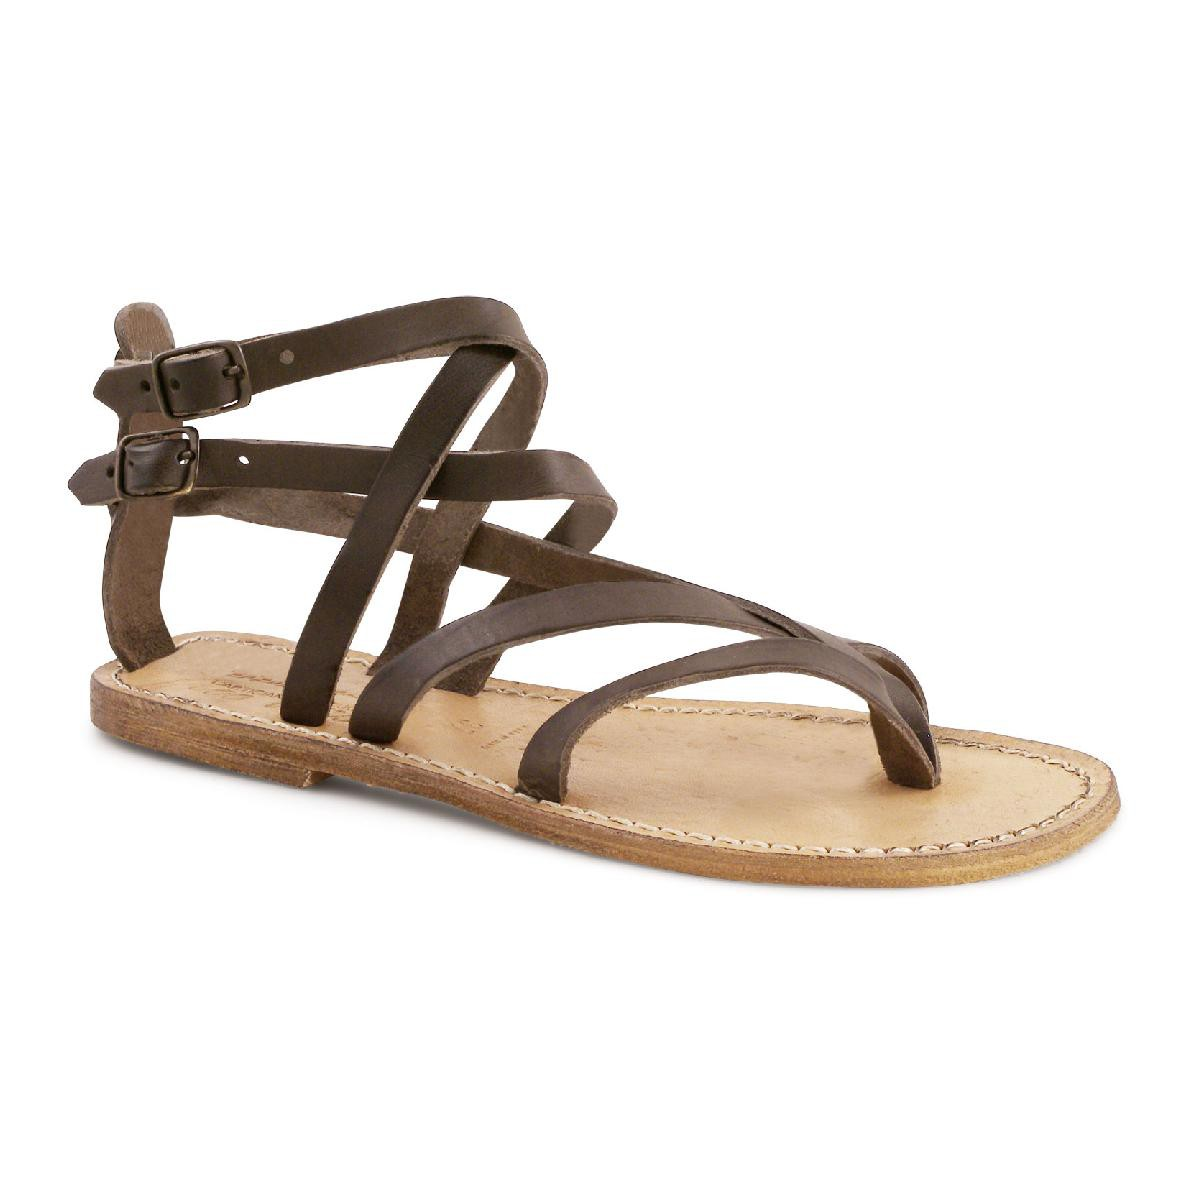 4b386fdba46 Gladiator sandals for women in mud color Vintage leather. Loading zoom